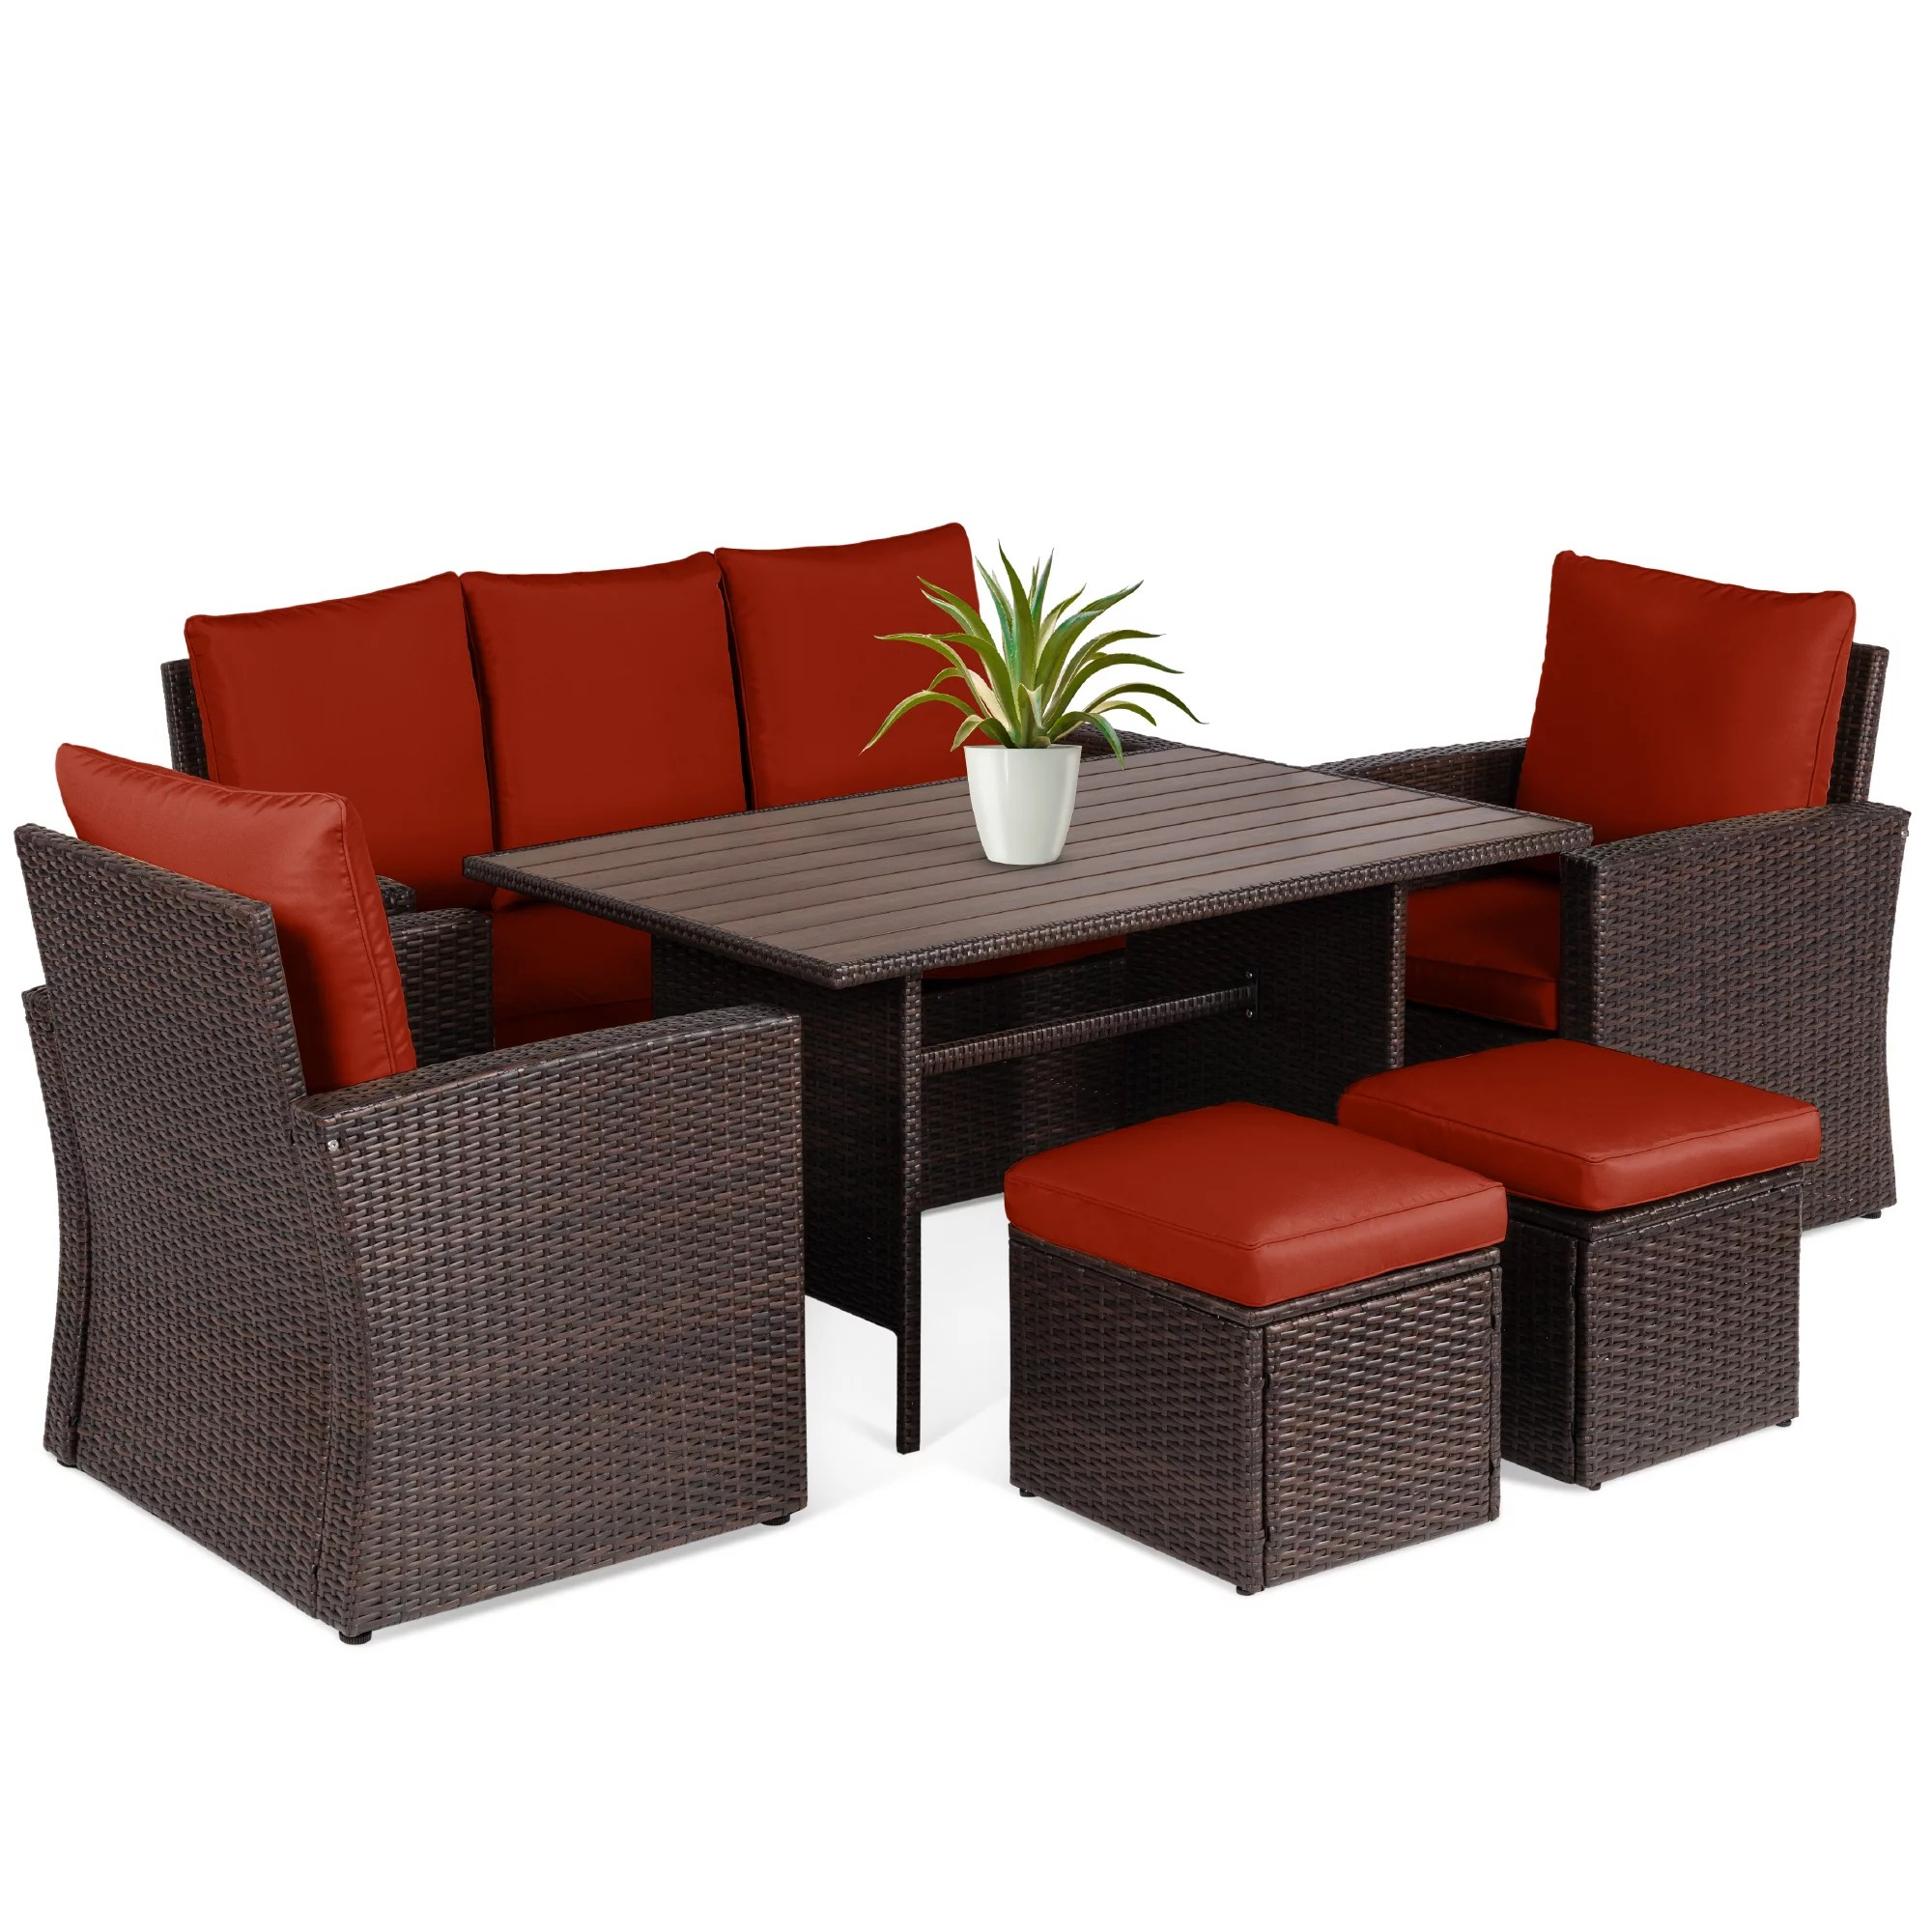 best choice products 7 seater conversation wicker dining table outdoor patio furniture set w cover brown red